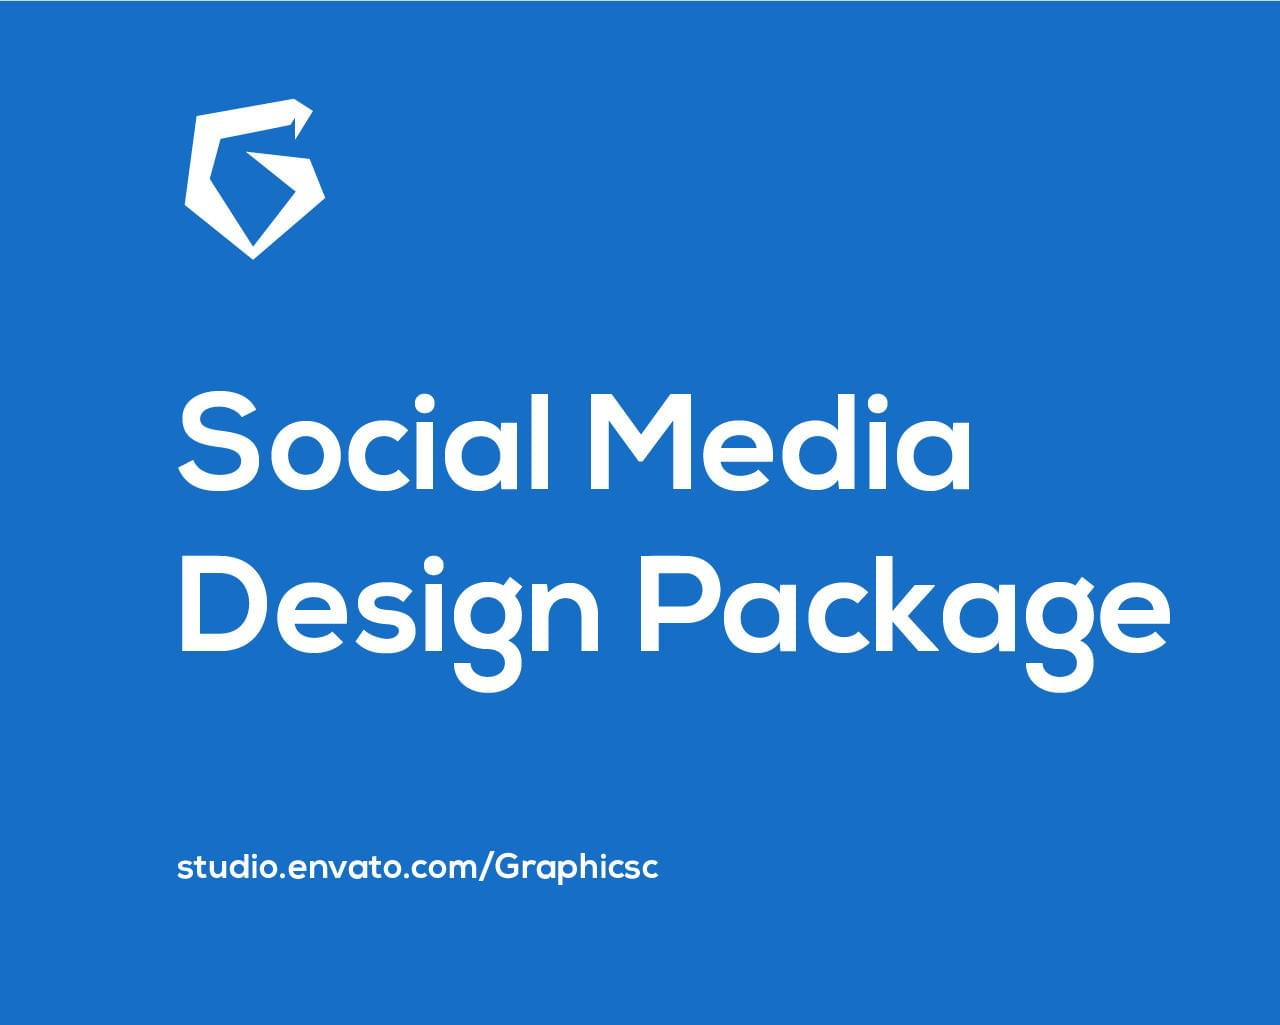 Social Media Cover Design Package by Graphicsc - 115875